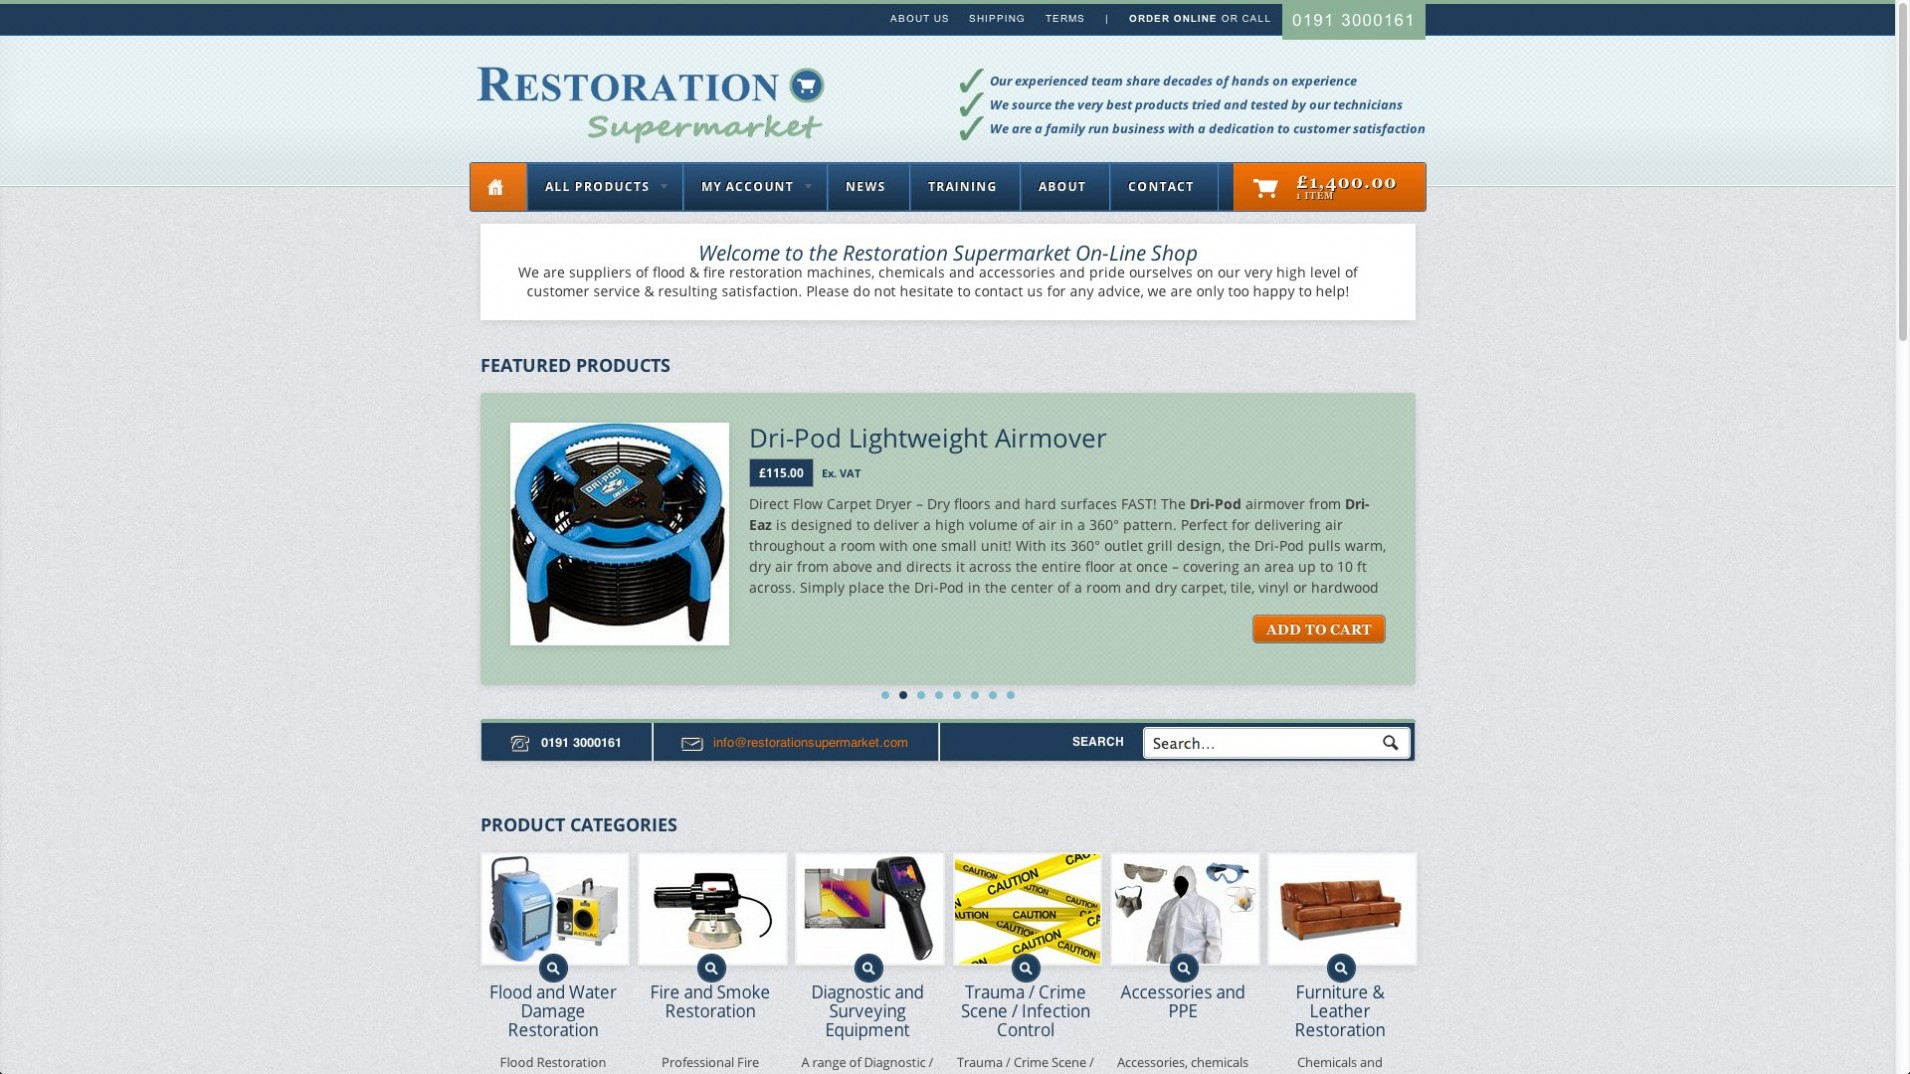 Screen Shot 2013 12 23 at 16.33.48 1 - E-commerce webdesign for cleaning equipment supplier